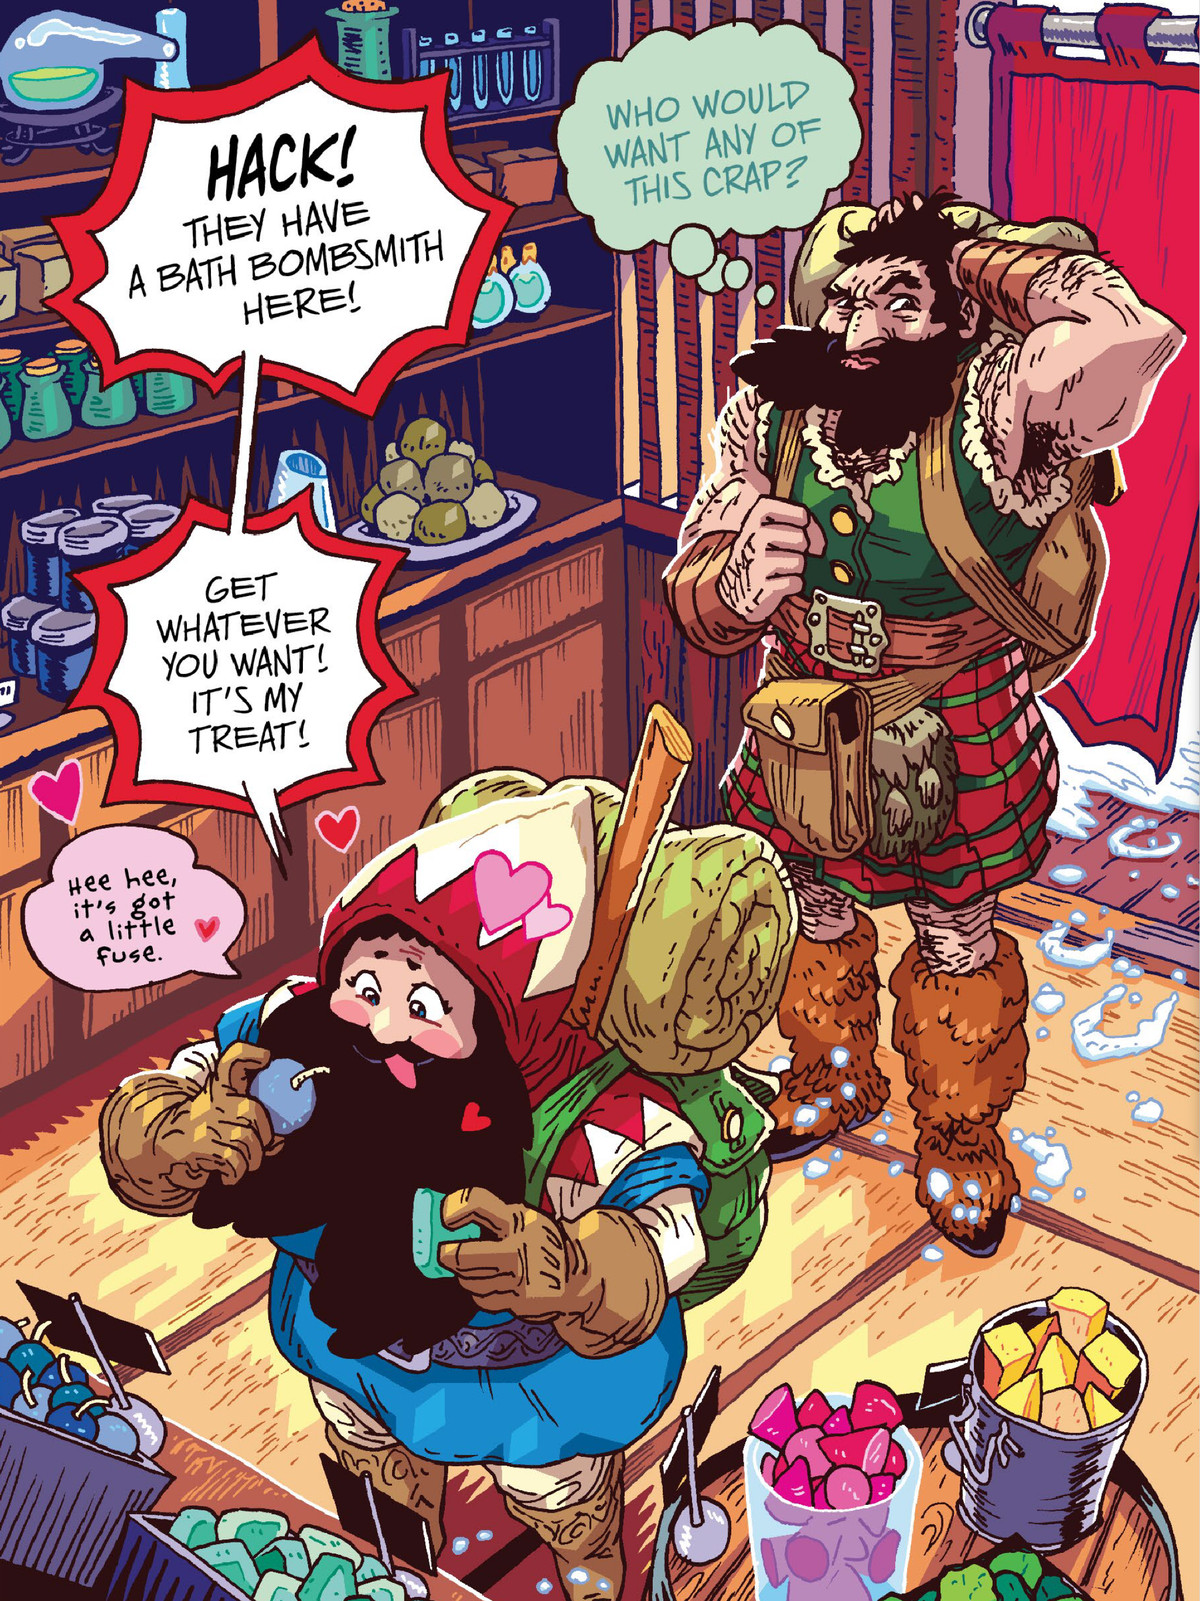 """She Dwarf gushes over the display of soaps and bathbombs at a bath house, exclaiming to her friend Hack Battler, """"Hack! They have a bath bombsmith here!"""" in The Savage Beard of She Dwarf, Oni Press (2020)."""